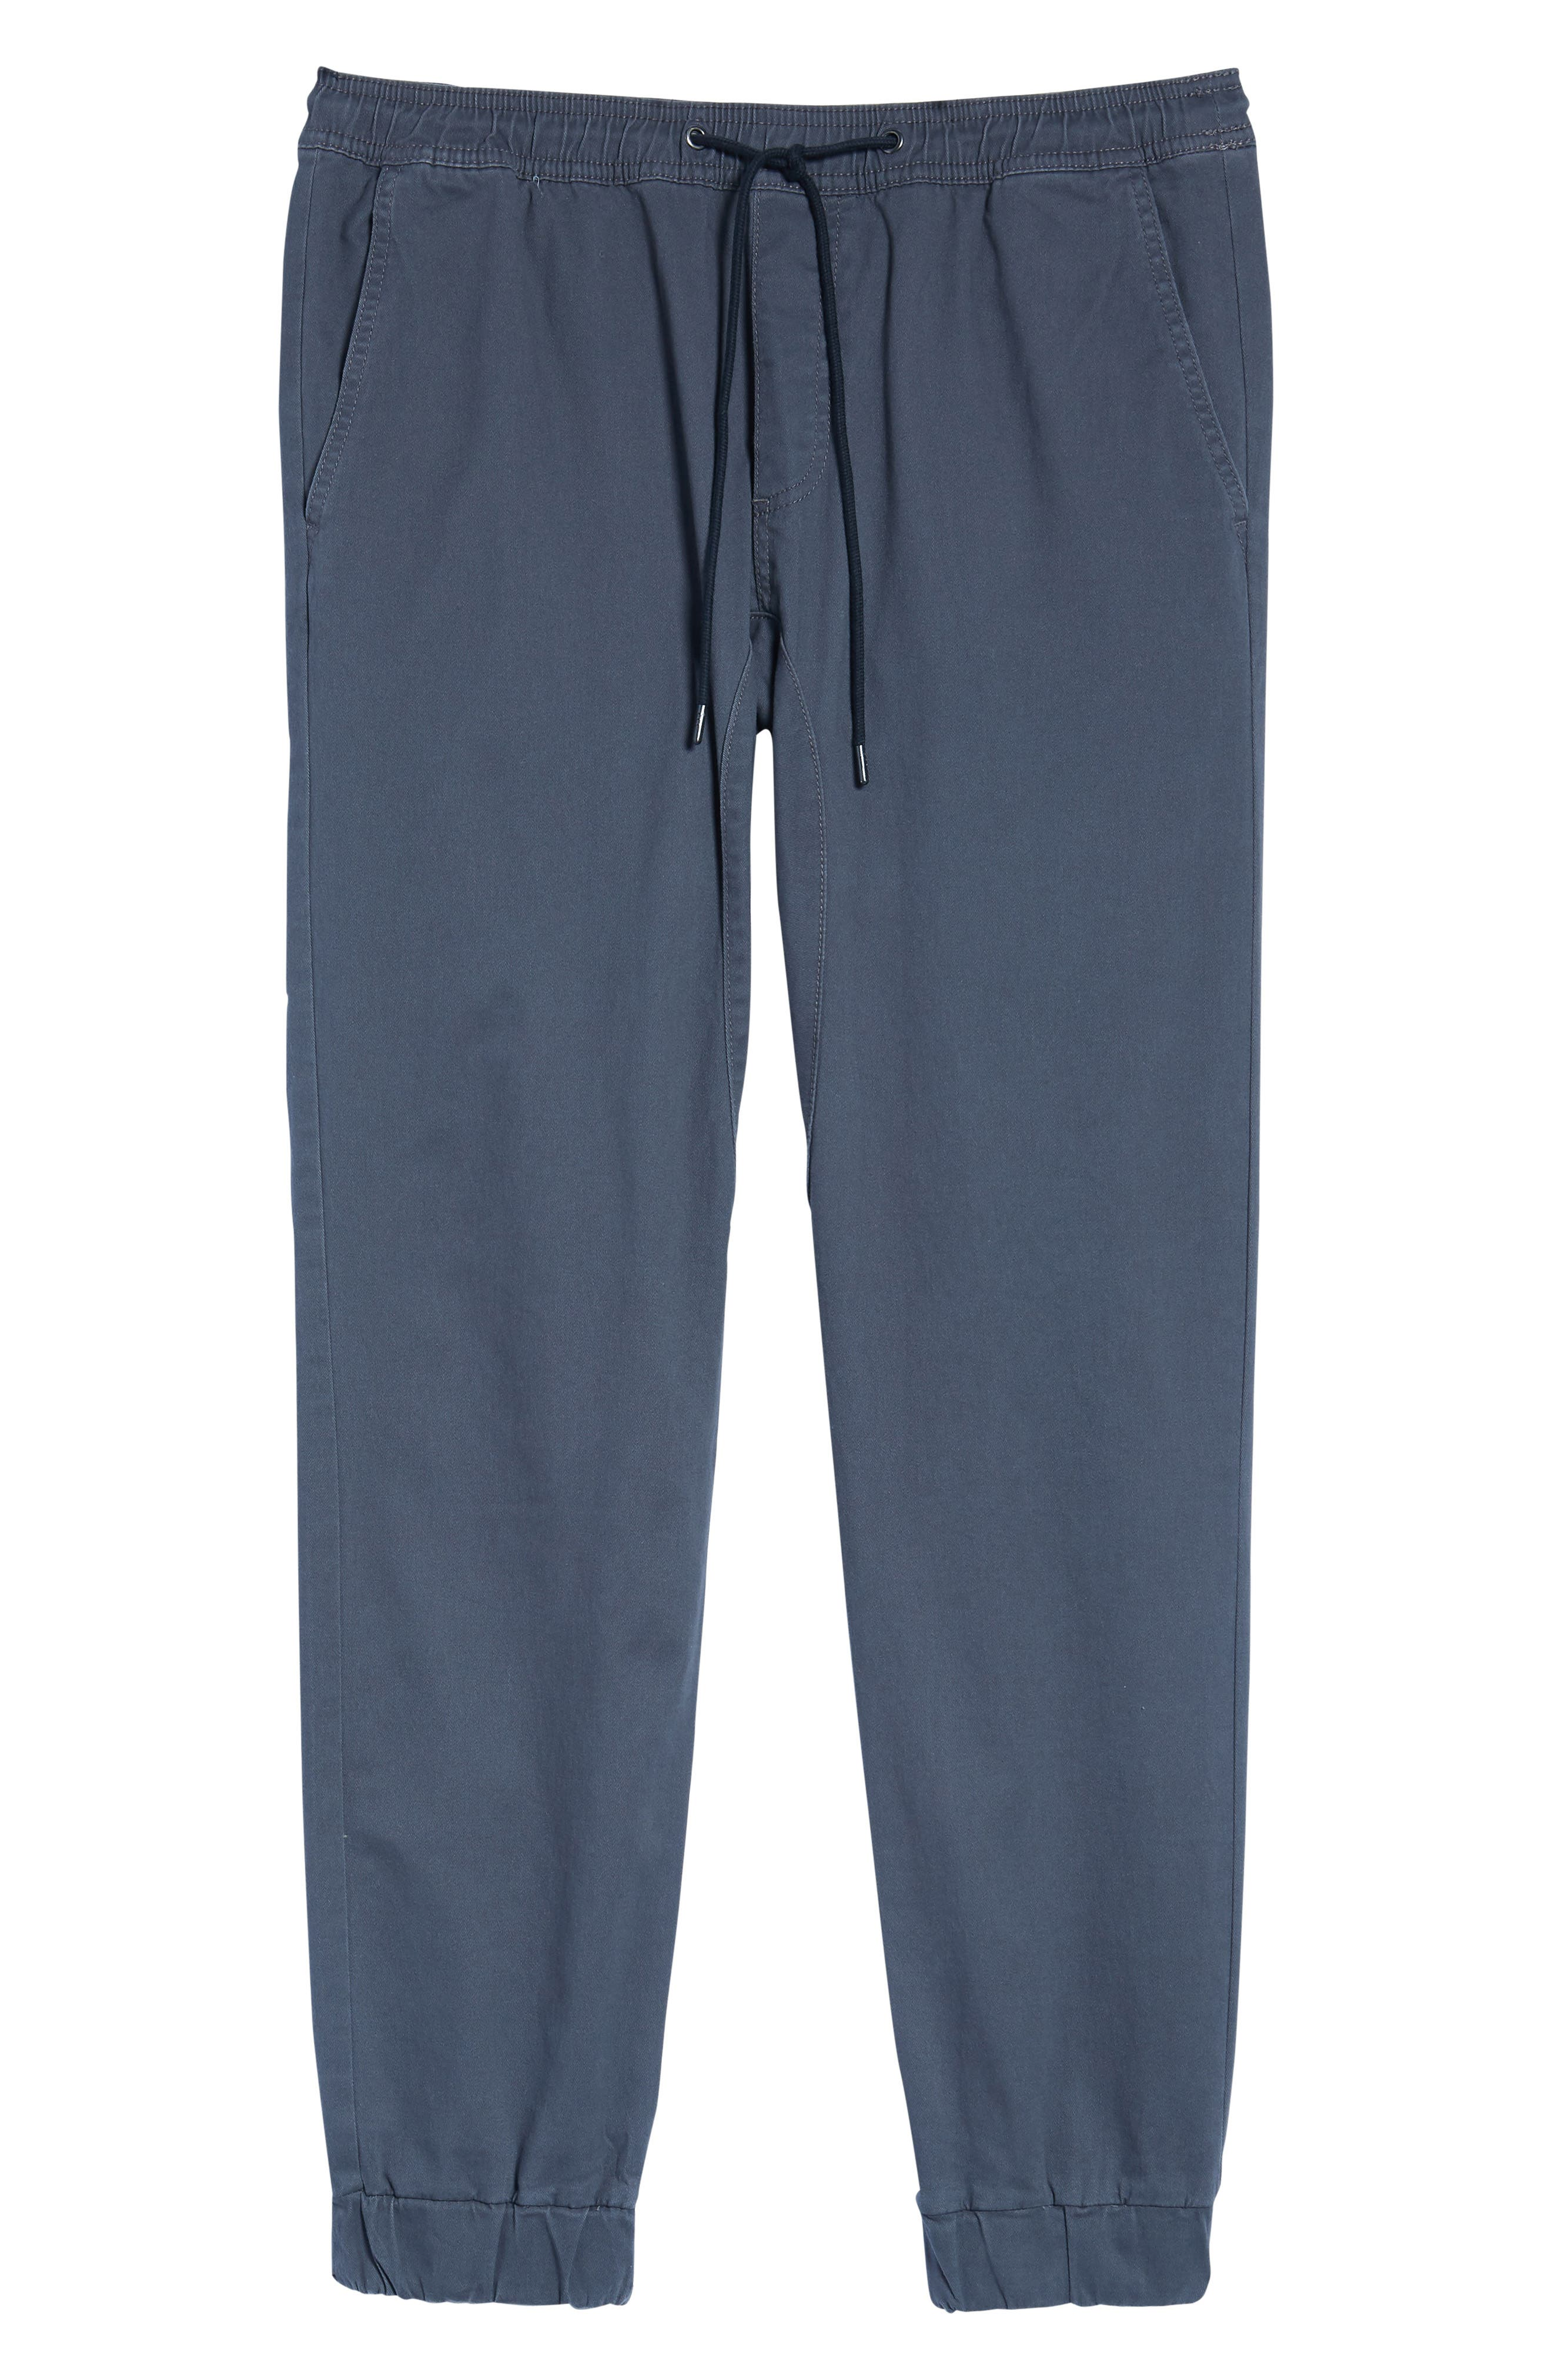 Jogger Pants,                             Alternate thumbnail 28, color,